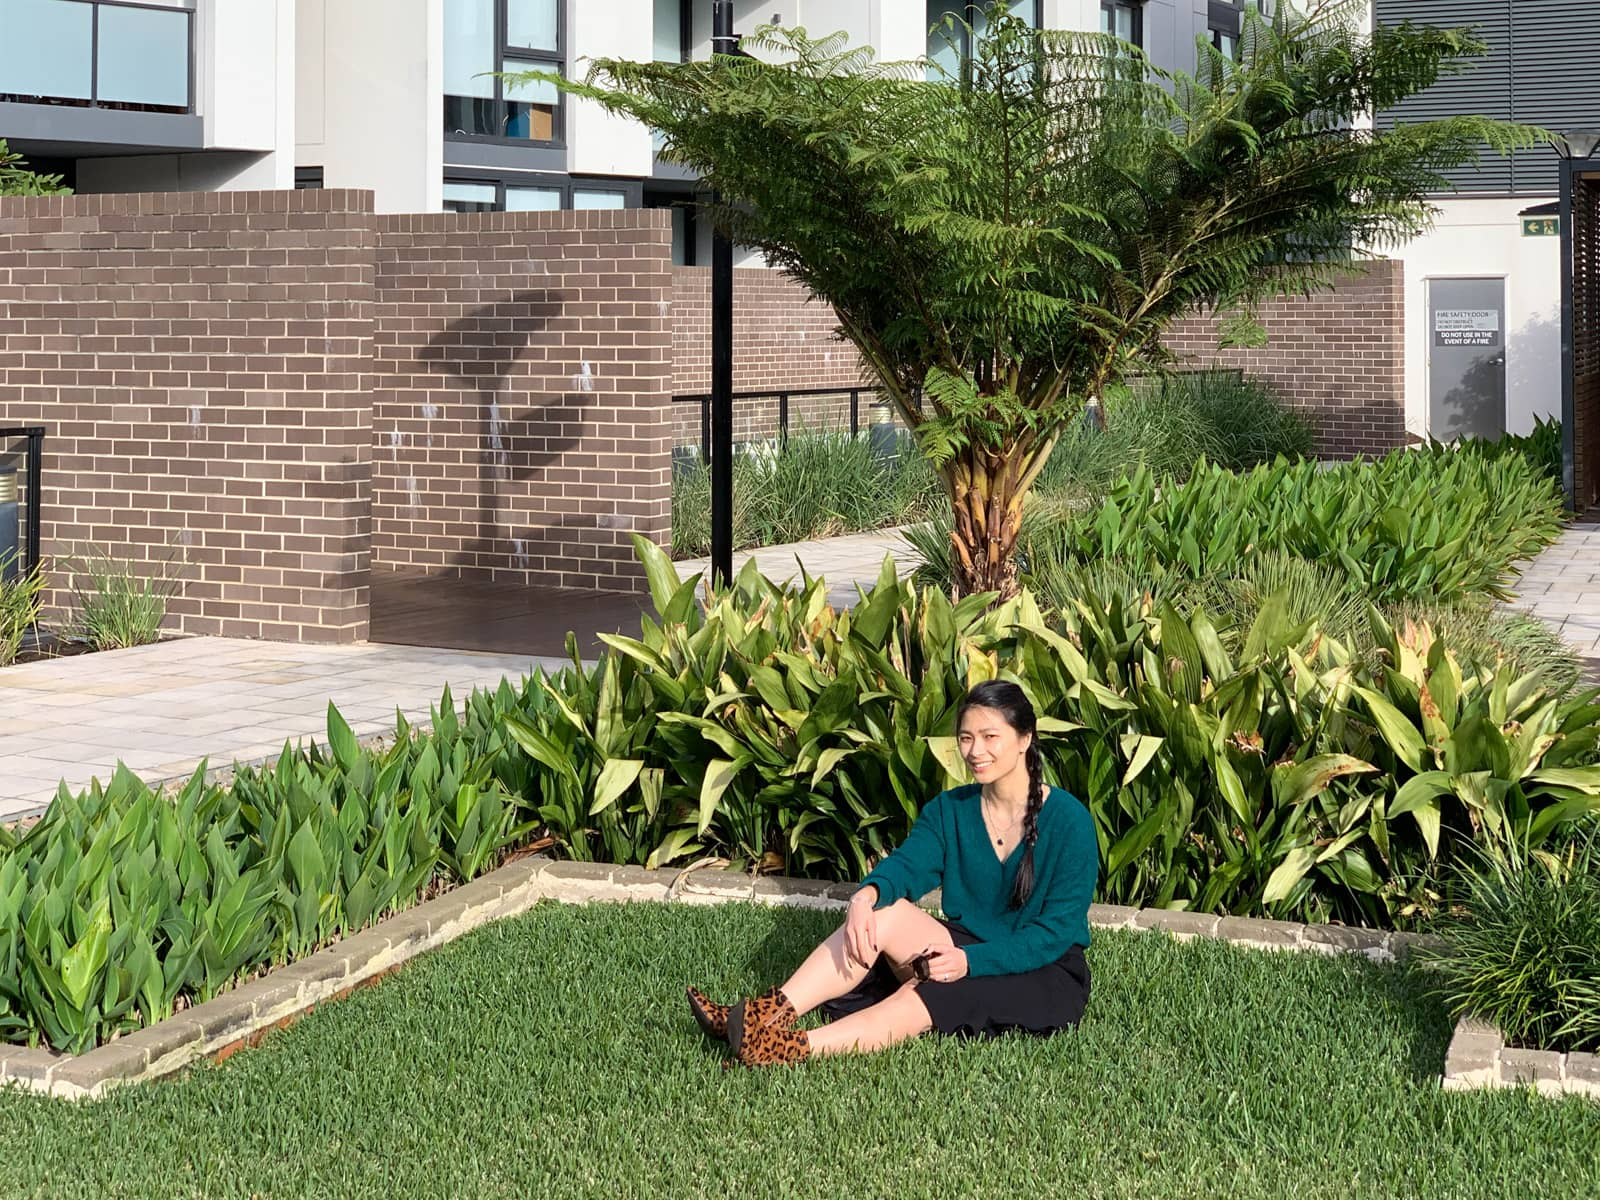 The same woman in other photos on this page, sitting down in the grass of a garden. There are some plants behind her. She is sitting with legs outstretched and one knee up